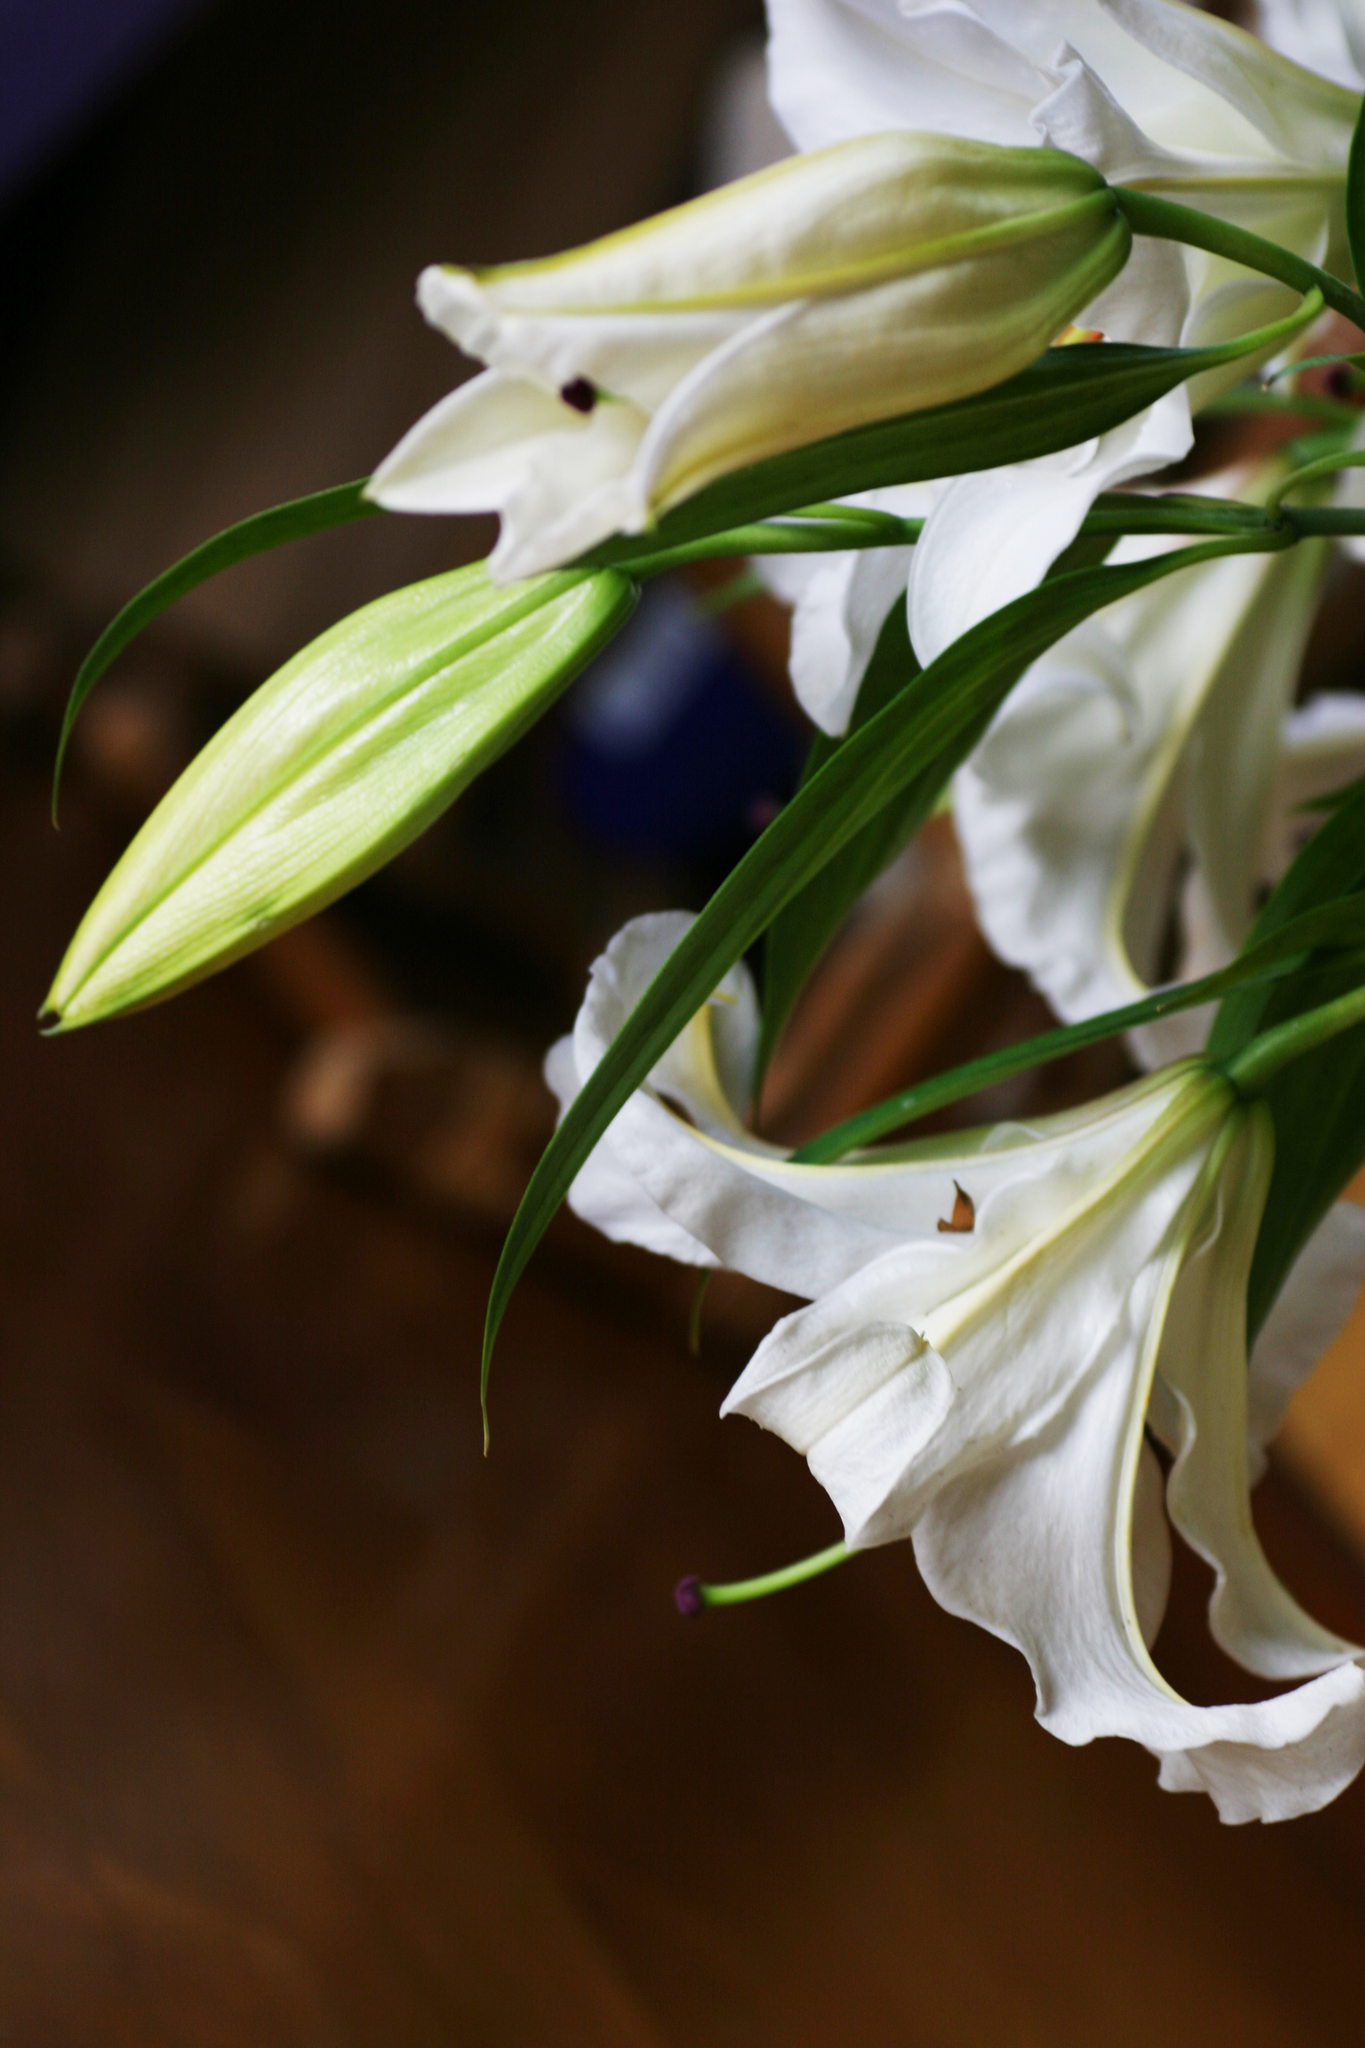 Top 5 flowers of the annunciation margaret rose realy obl osb file0001616564937 madonna lily izmirmasajfo